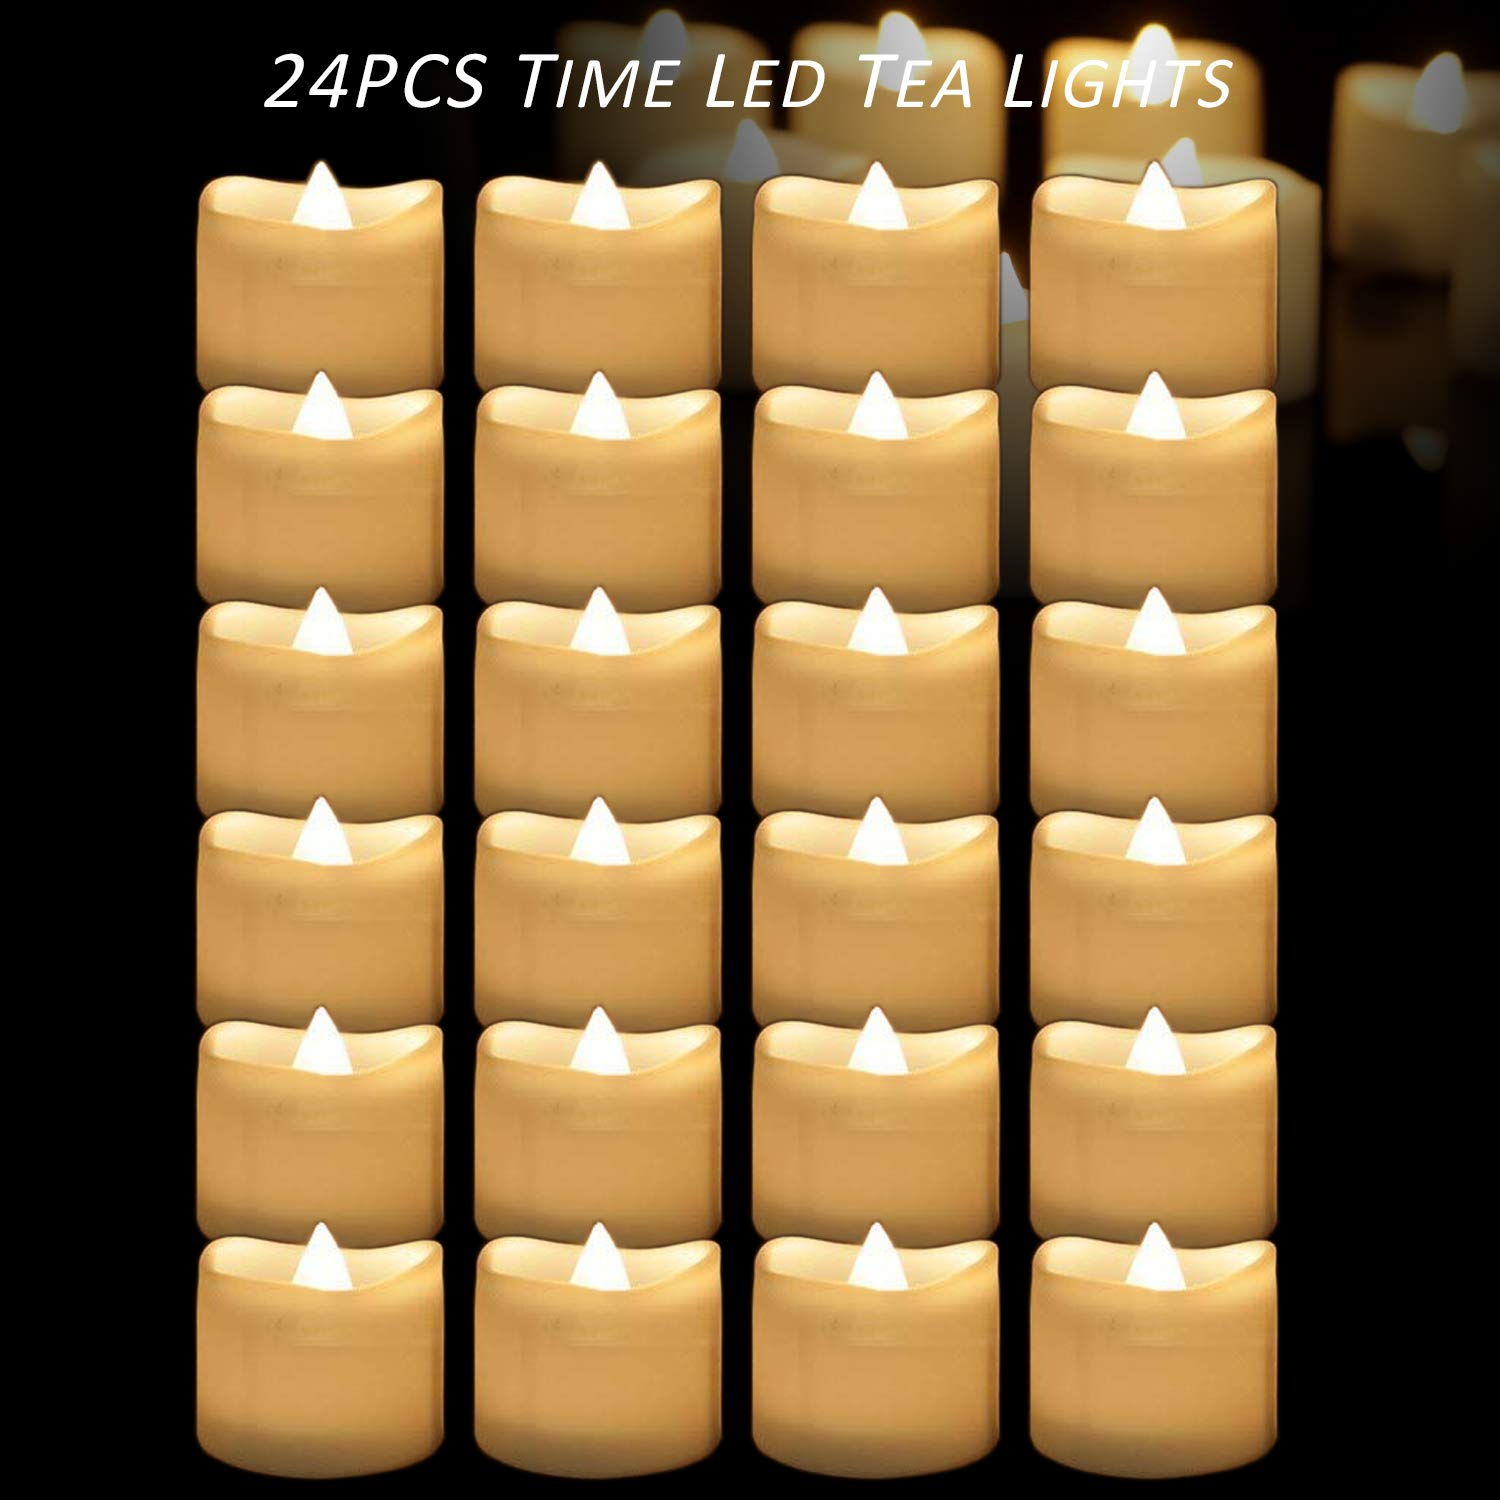 Micandle 24PCS Battery Tea Lights with Timer, 6 Hours on and 18 Hours Off in 24 Hours Cycle Automatically,Warm White Flickering Timing LED Candles Lights,1.4 x 1.4 Inch